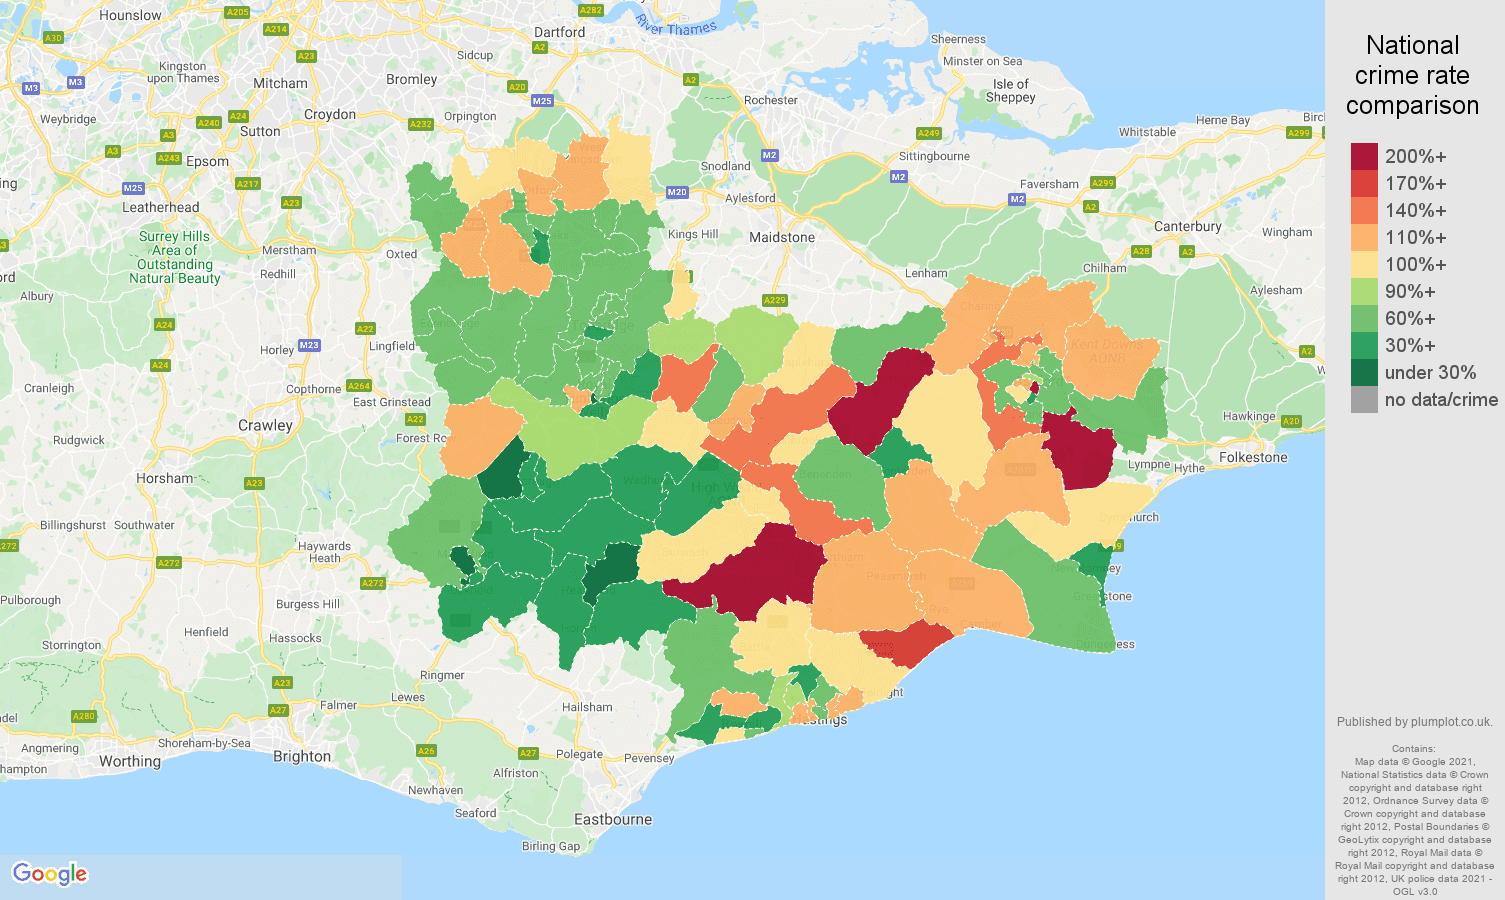 Tonbridge burglary crime rate comparison map